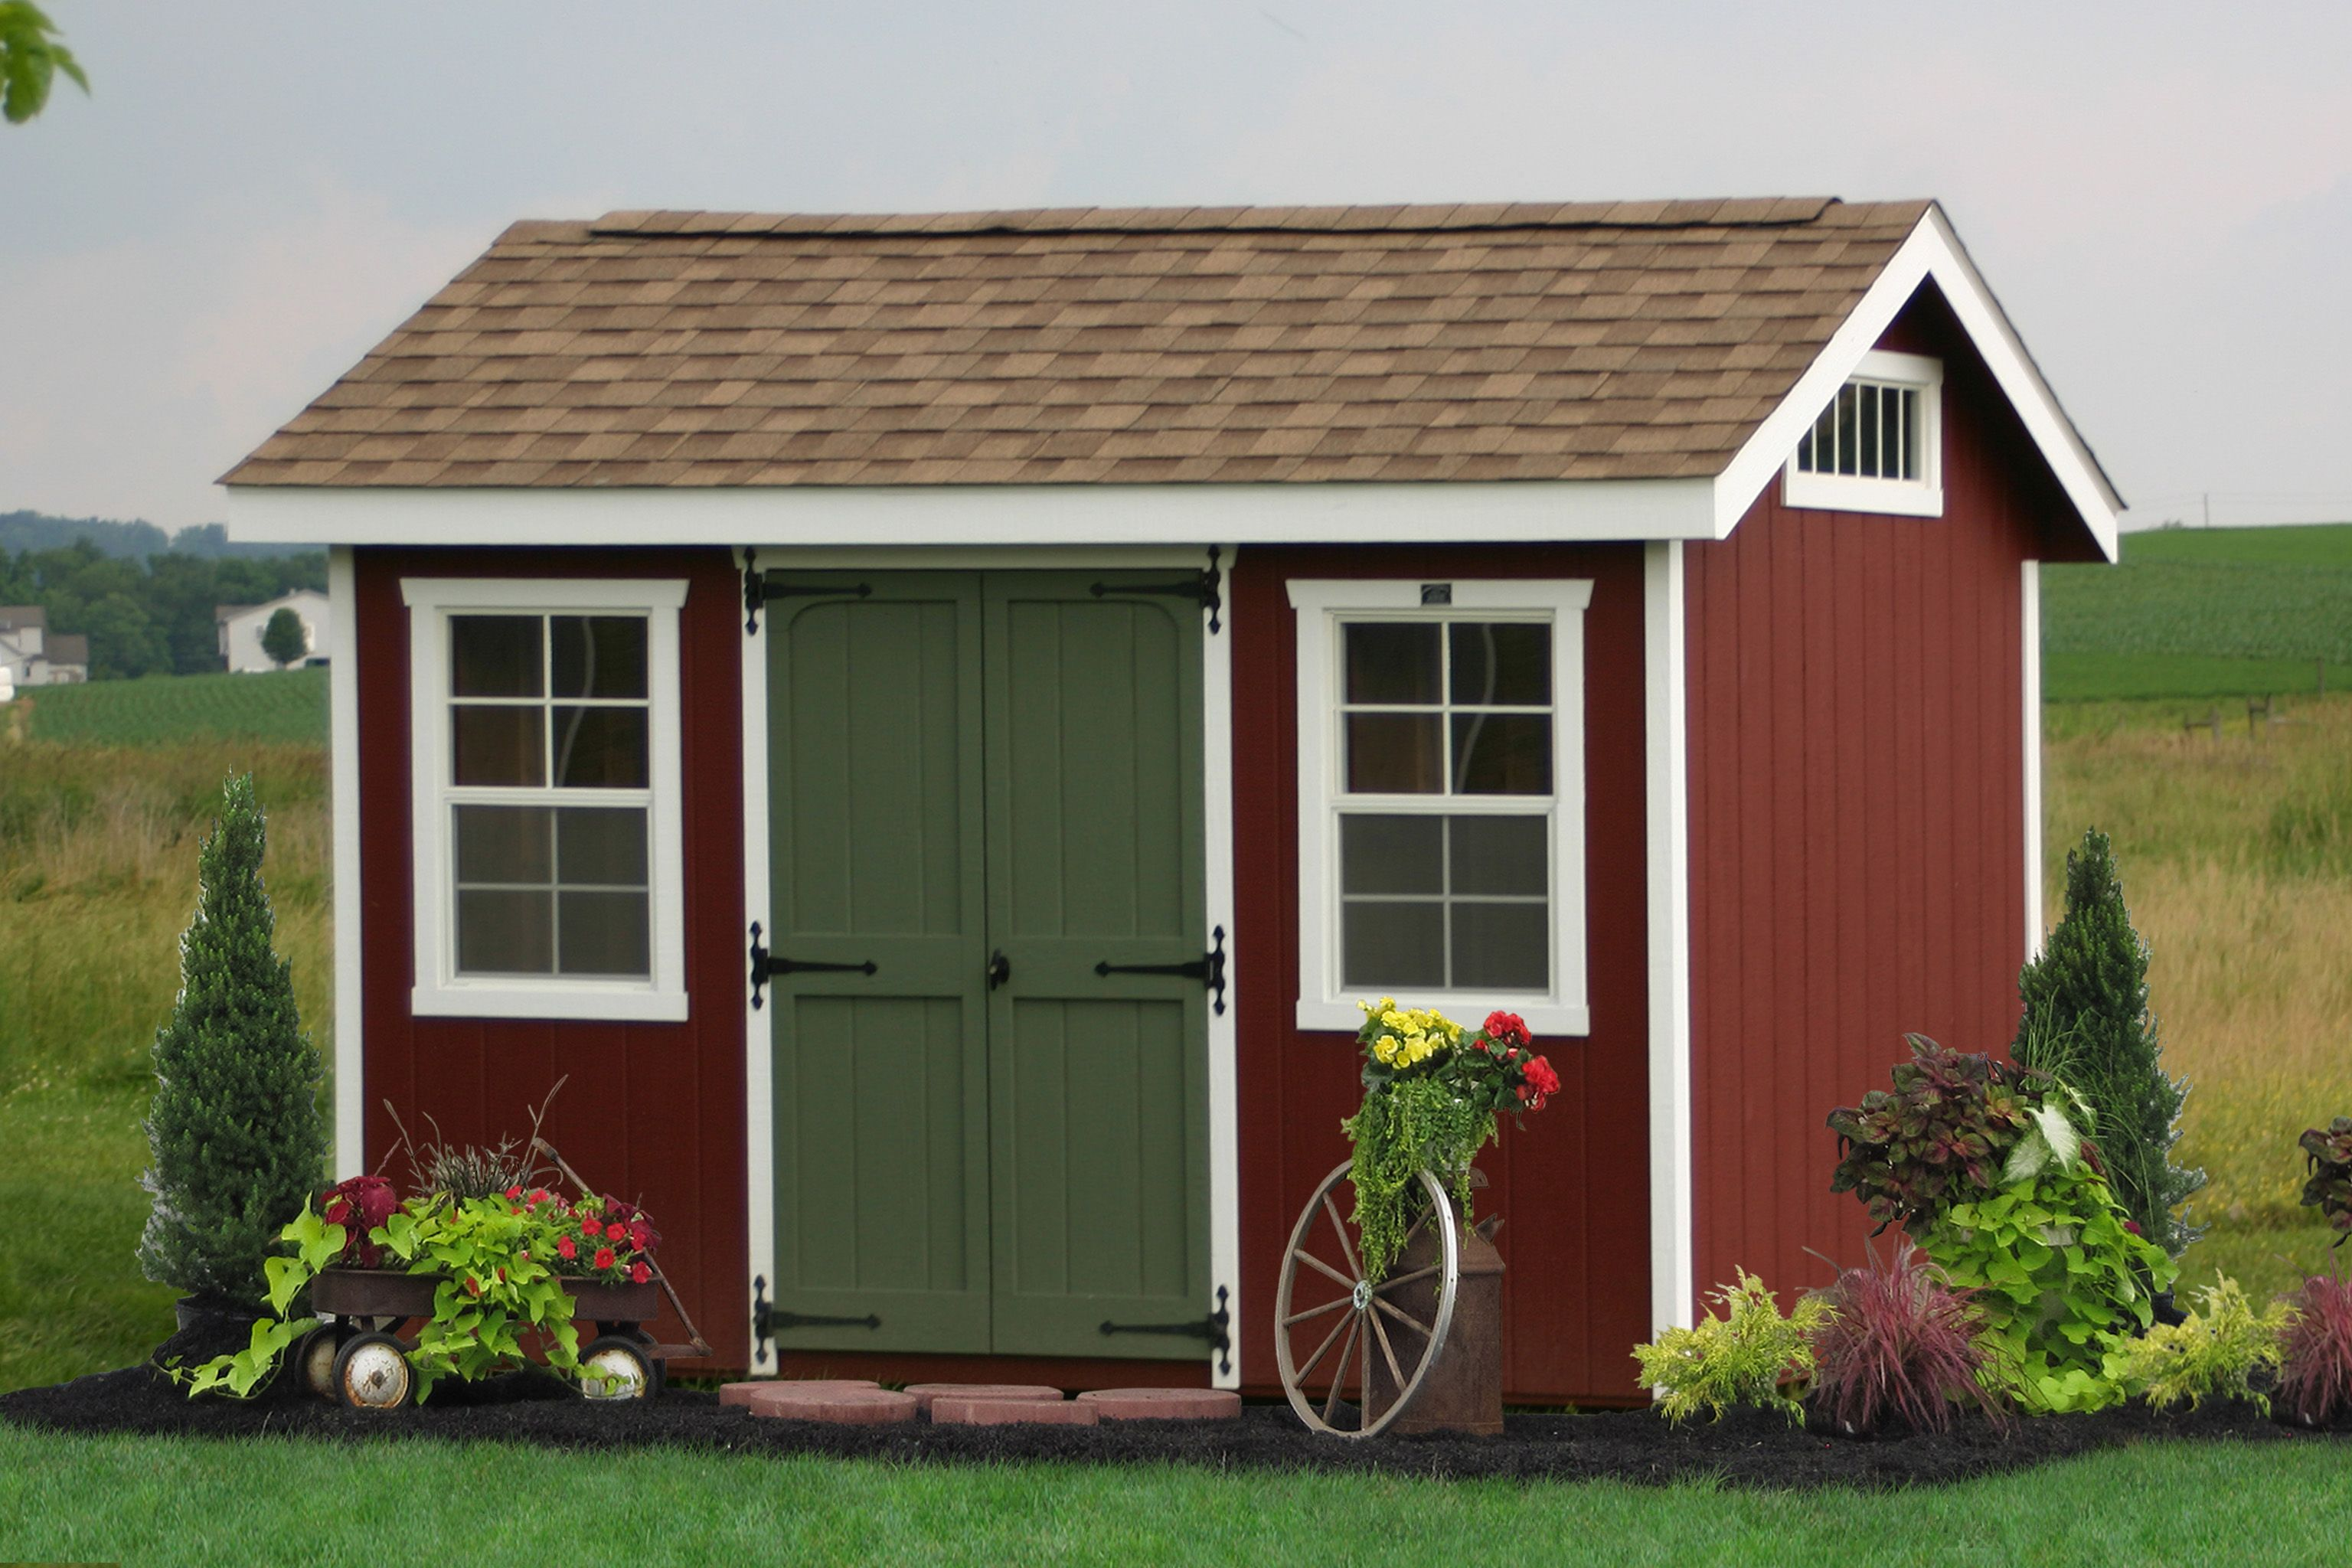 buy amish garden sheds in ny - Garden Sheds Nj